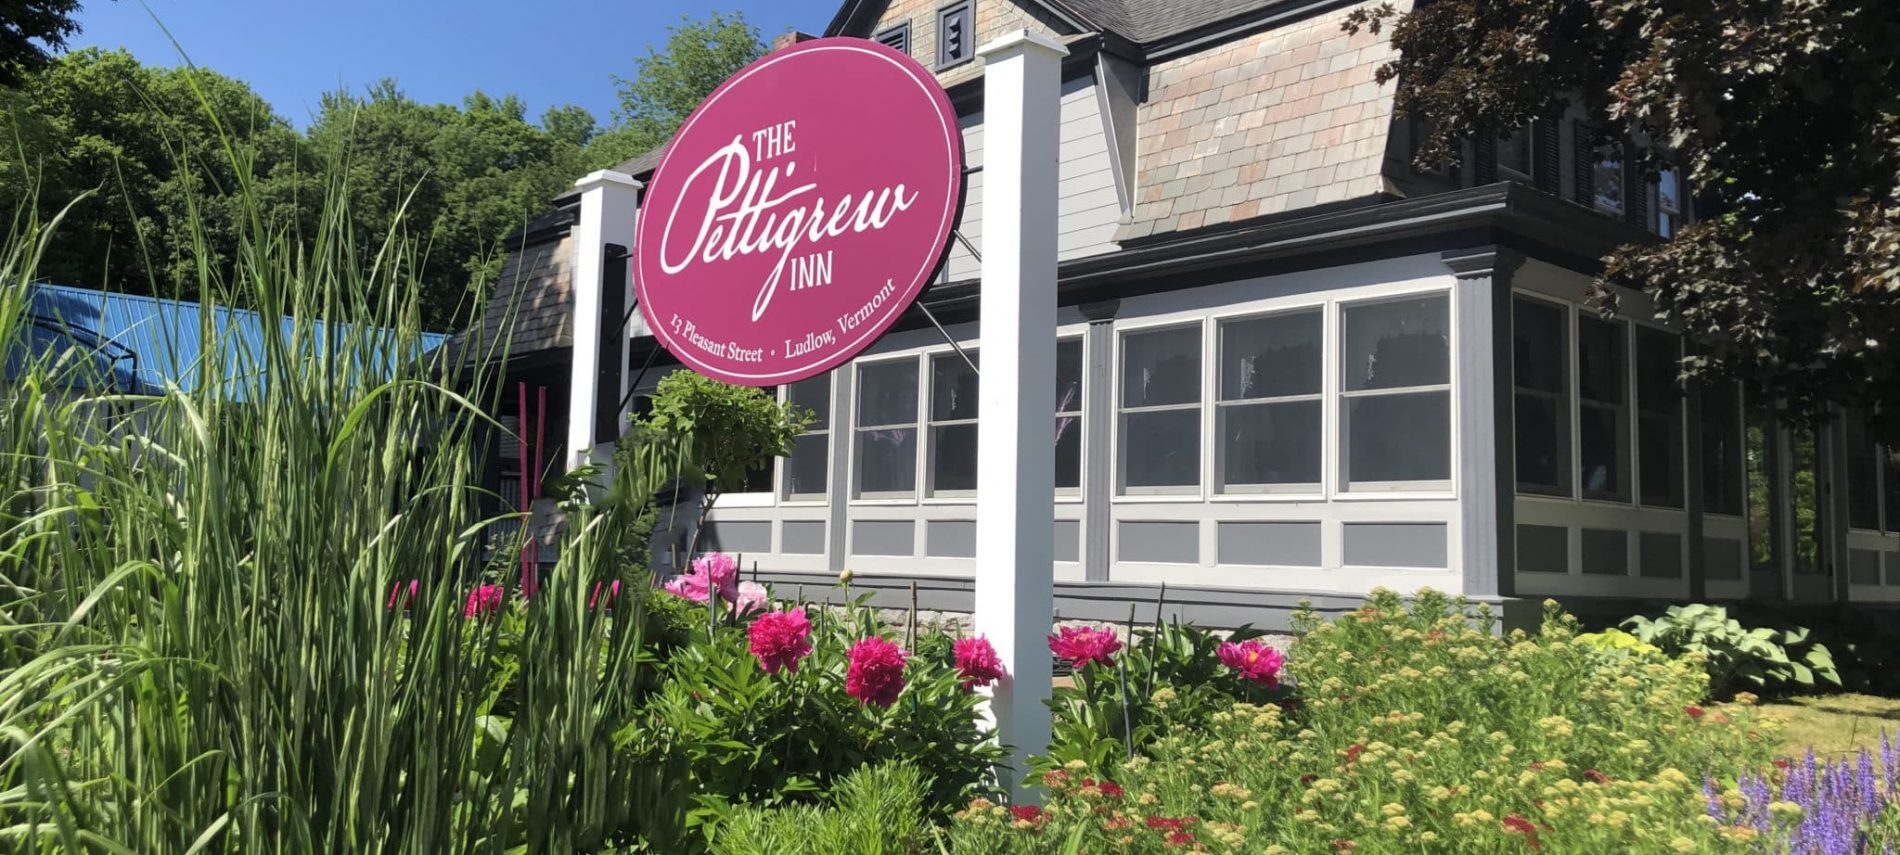 The Pettigrew Inn in the heart of Ludlow Village, Vermont